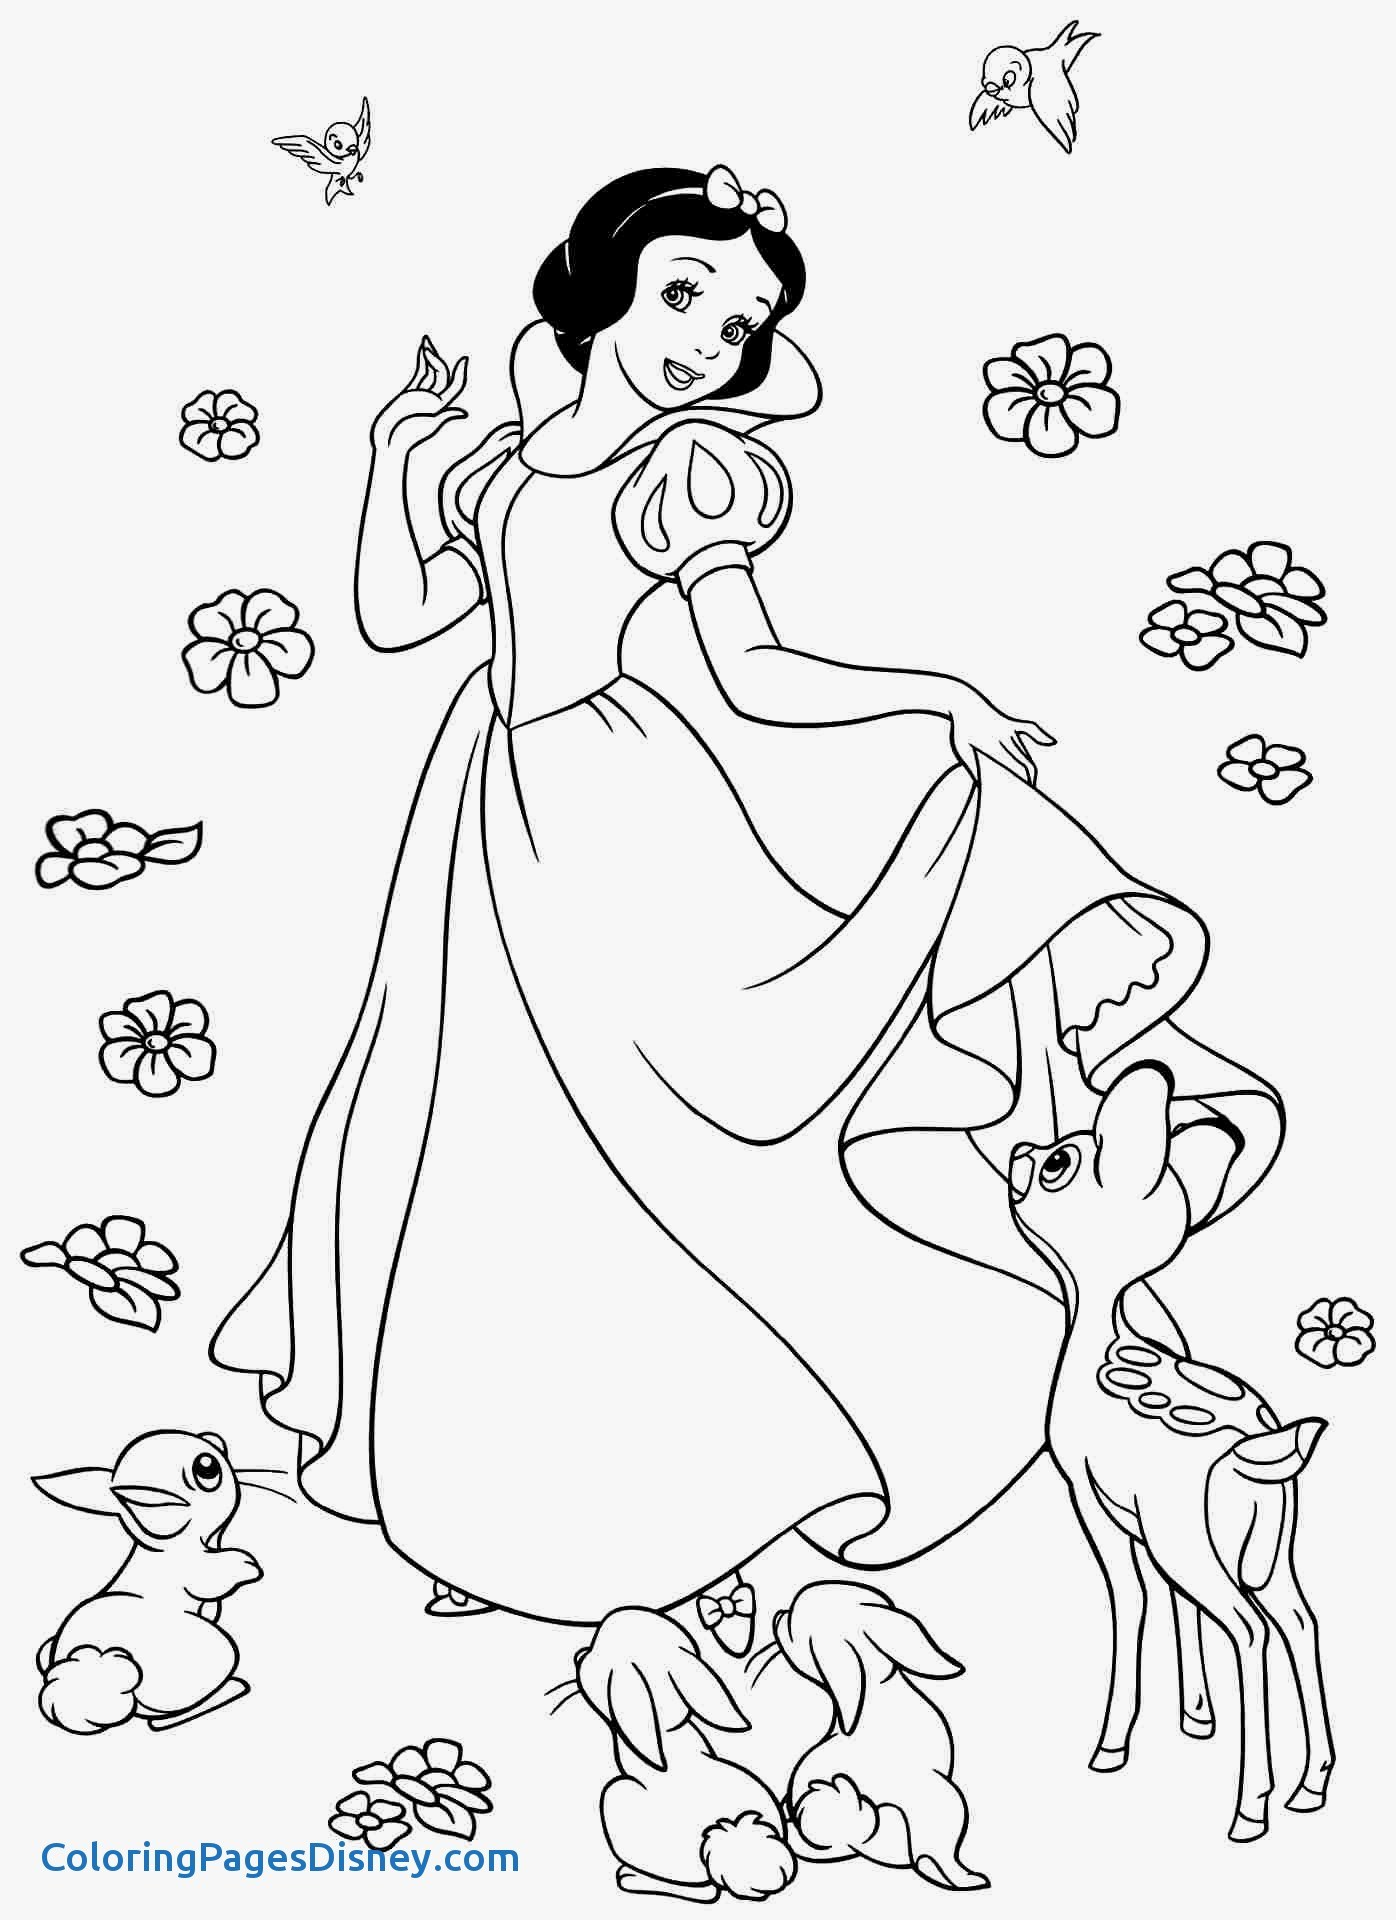 1396x1920 Snow White And The Seven Dwarfs Coloring Pages Best Of Disney Snow